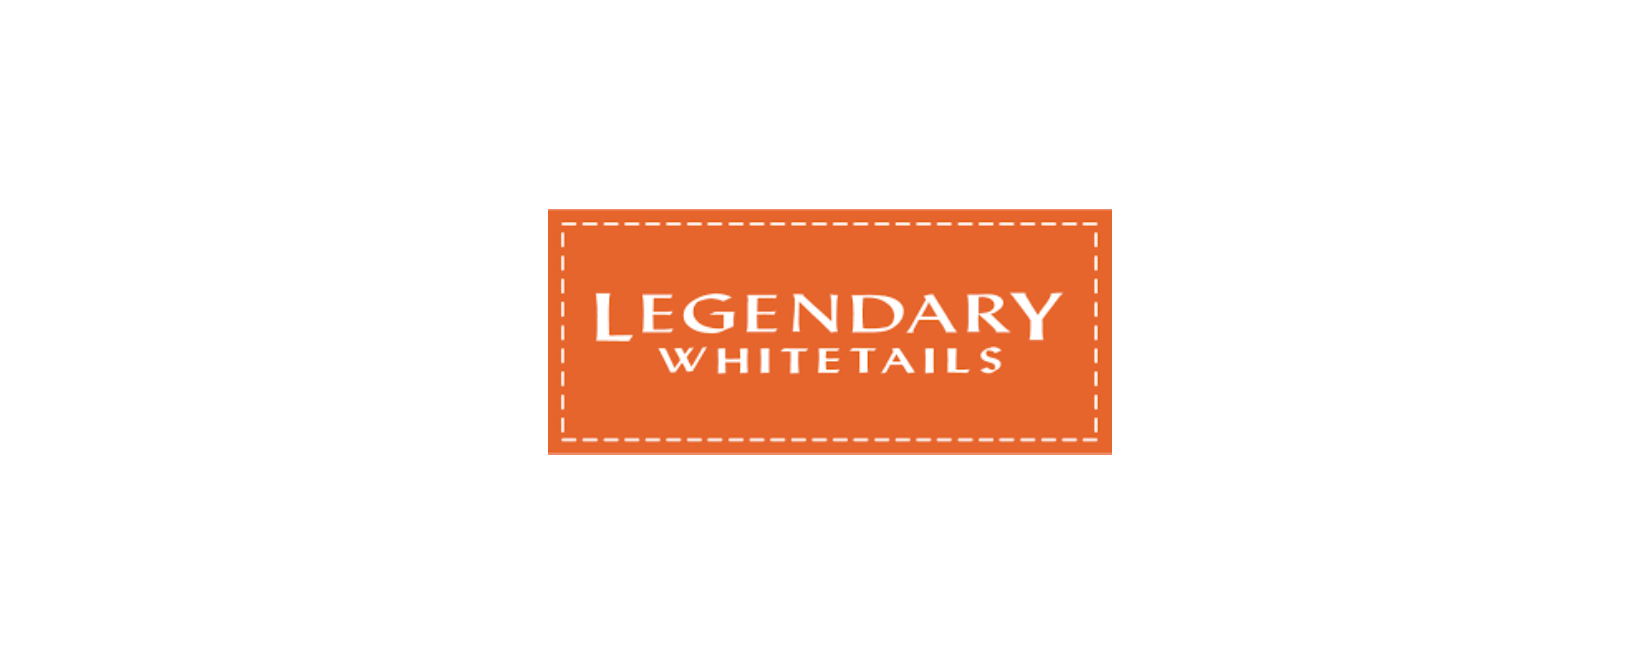 Legendary Whitetails Coupon Code 2021